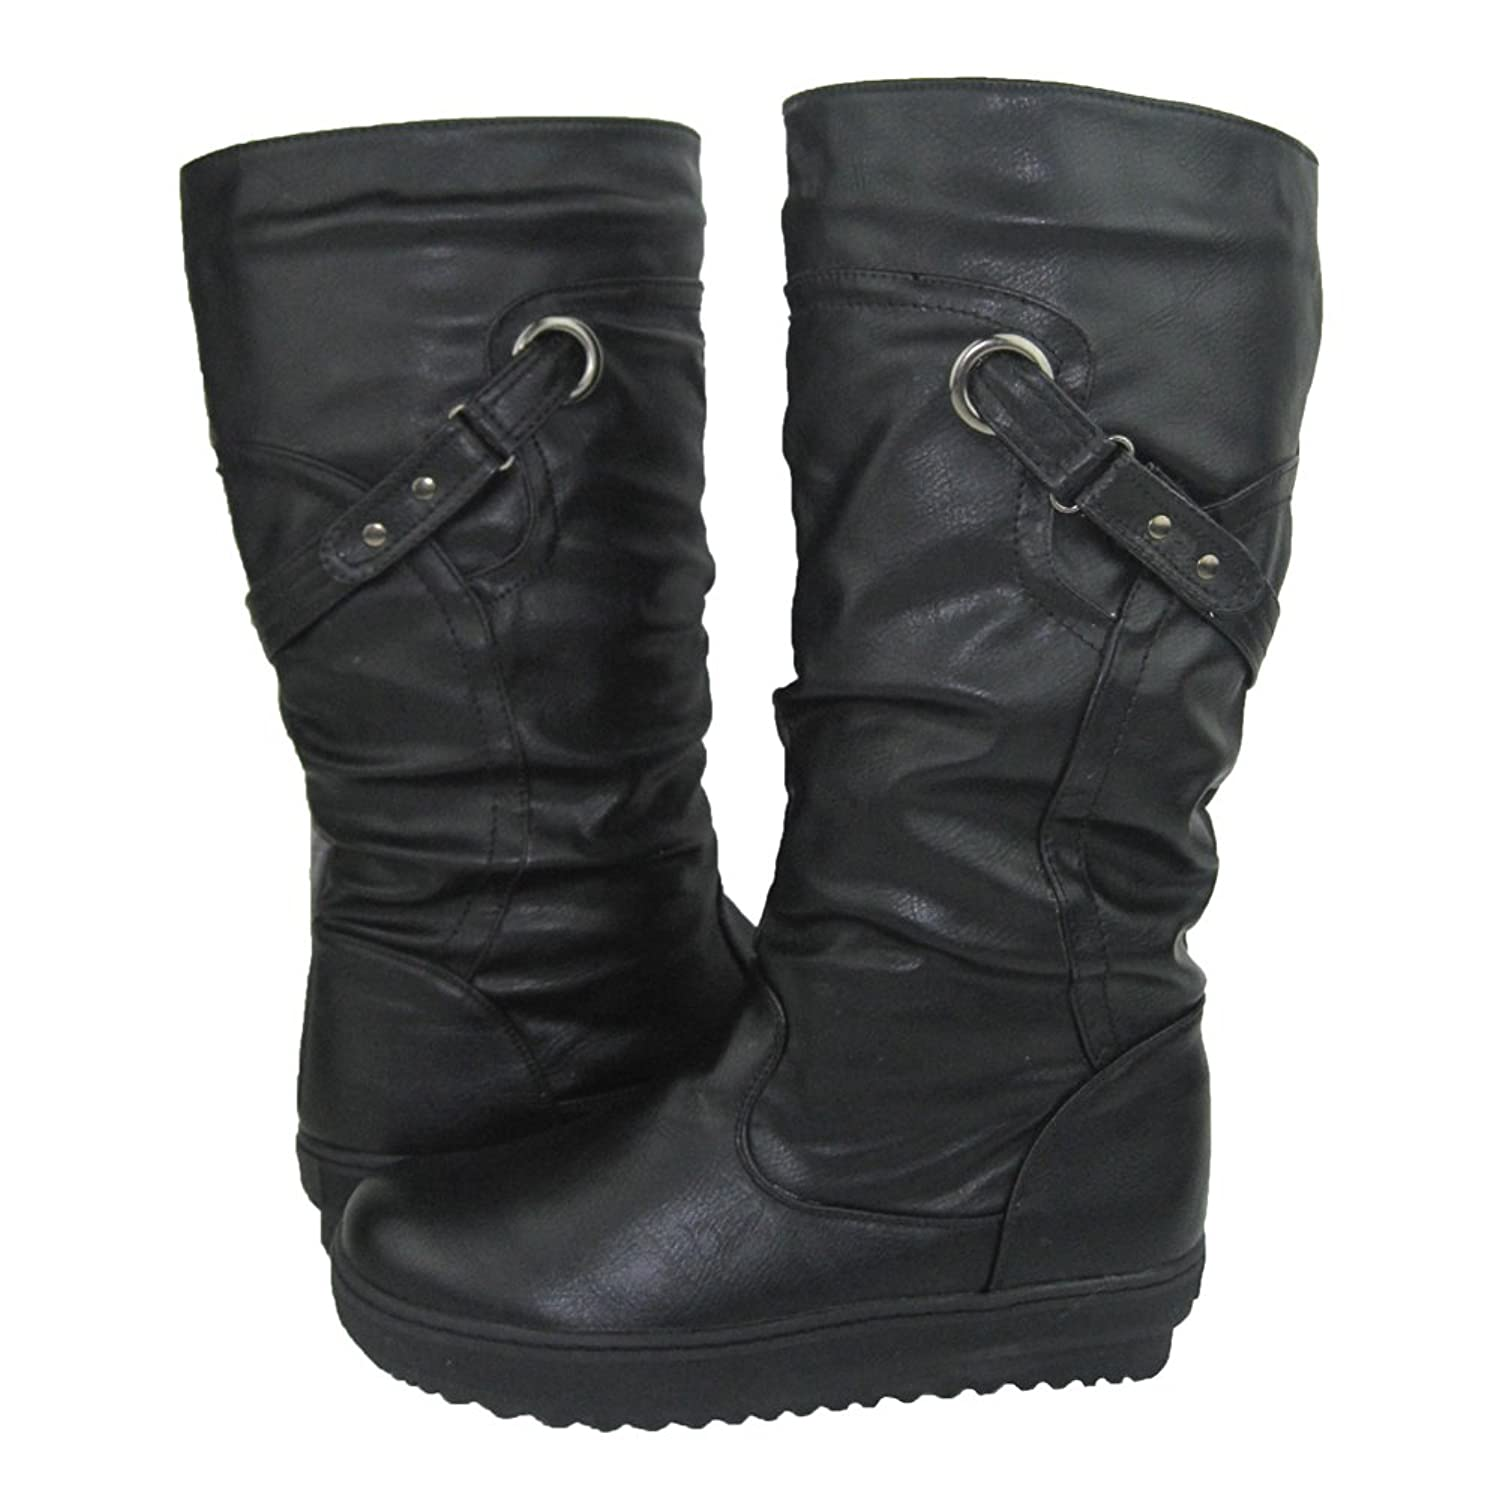 Womens Winter Boots Wide Sizes 31